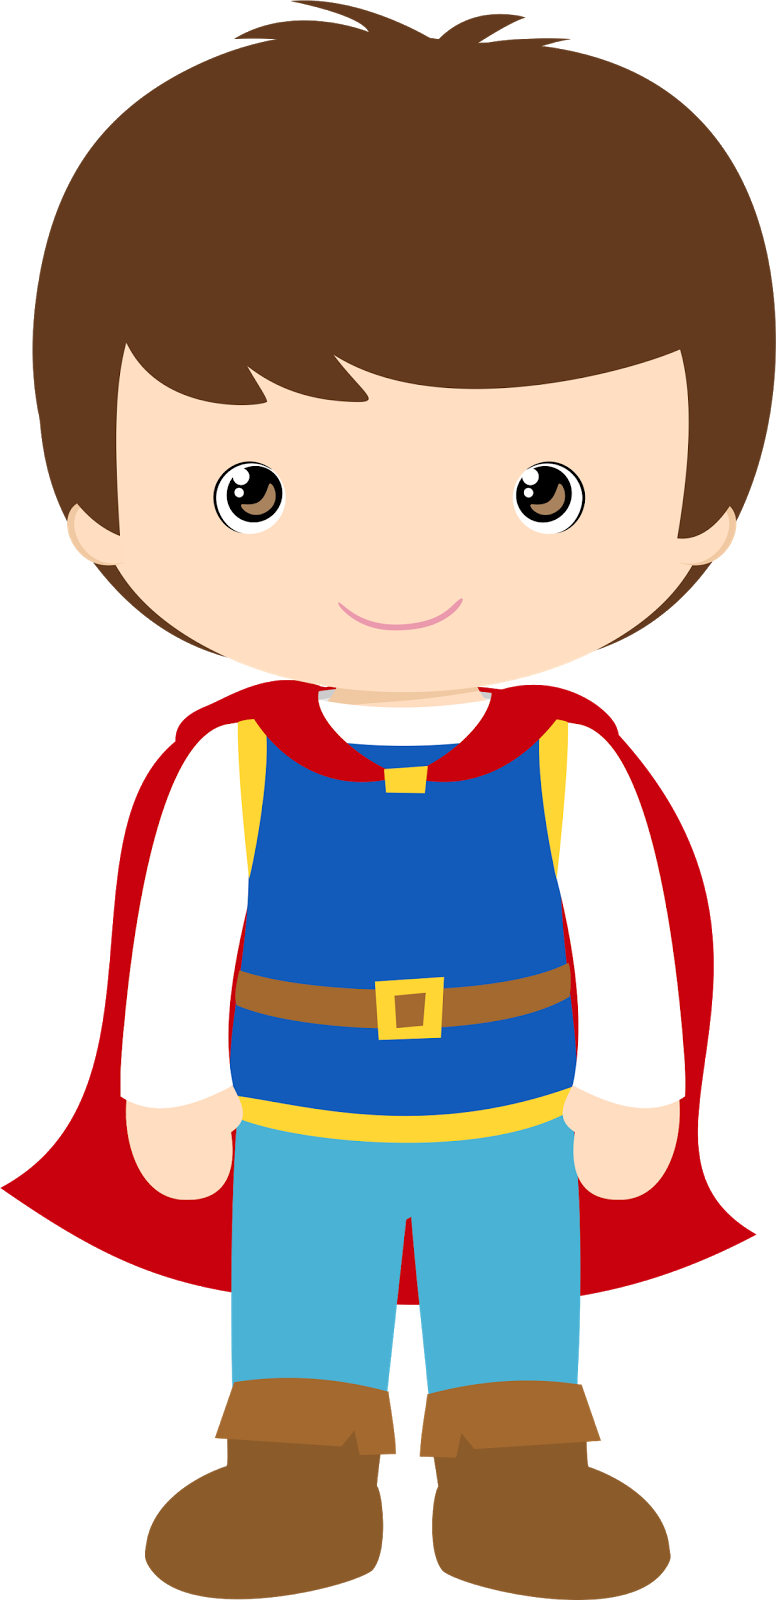 Prince clipart baby boy. Pin by vpasch on